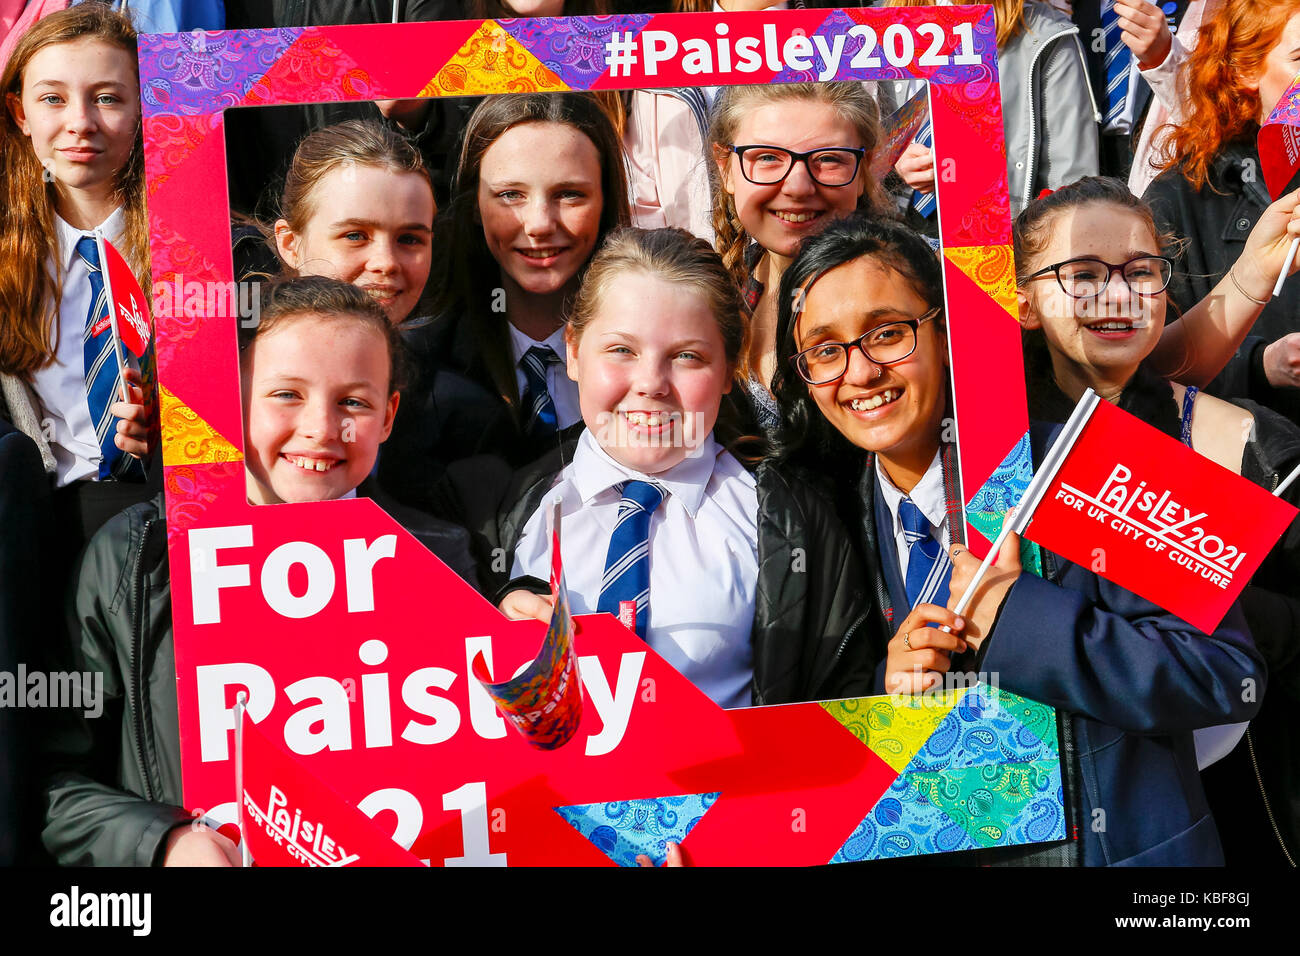 Renfrewshire, UK. 29th Sep, 2017. Paisley officially launched its bid to be City of Culture 2021 by holding a street - Stock Image